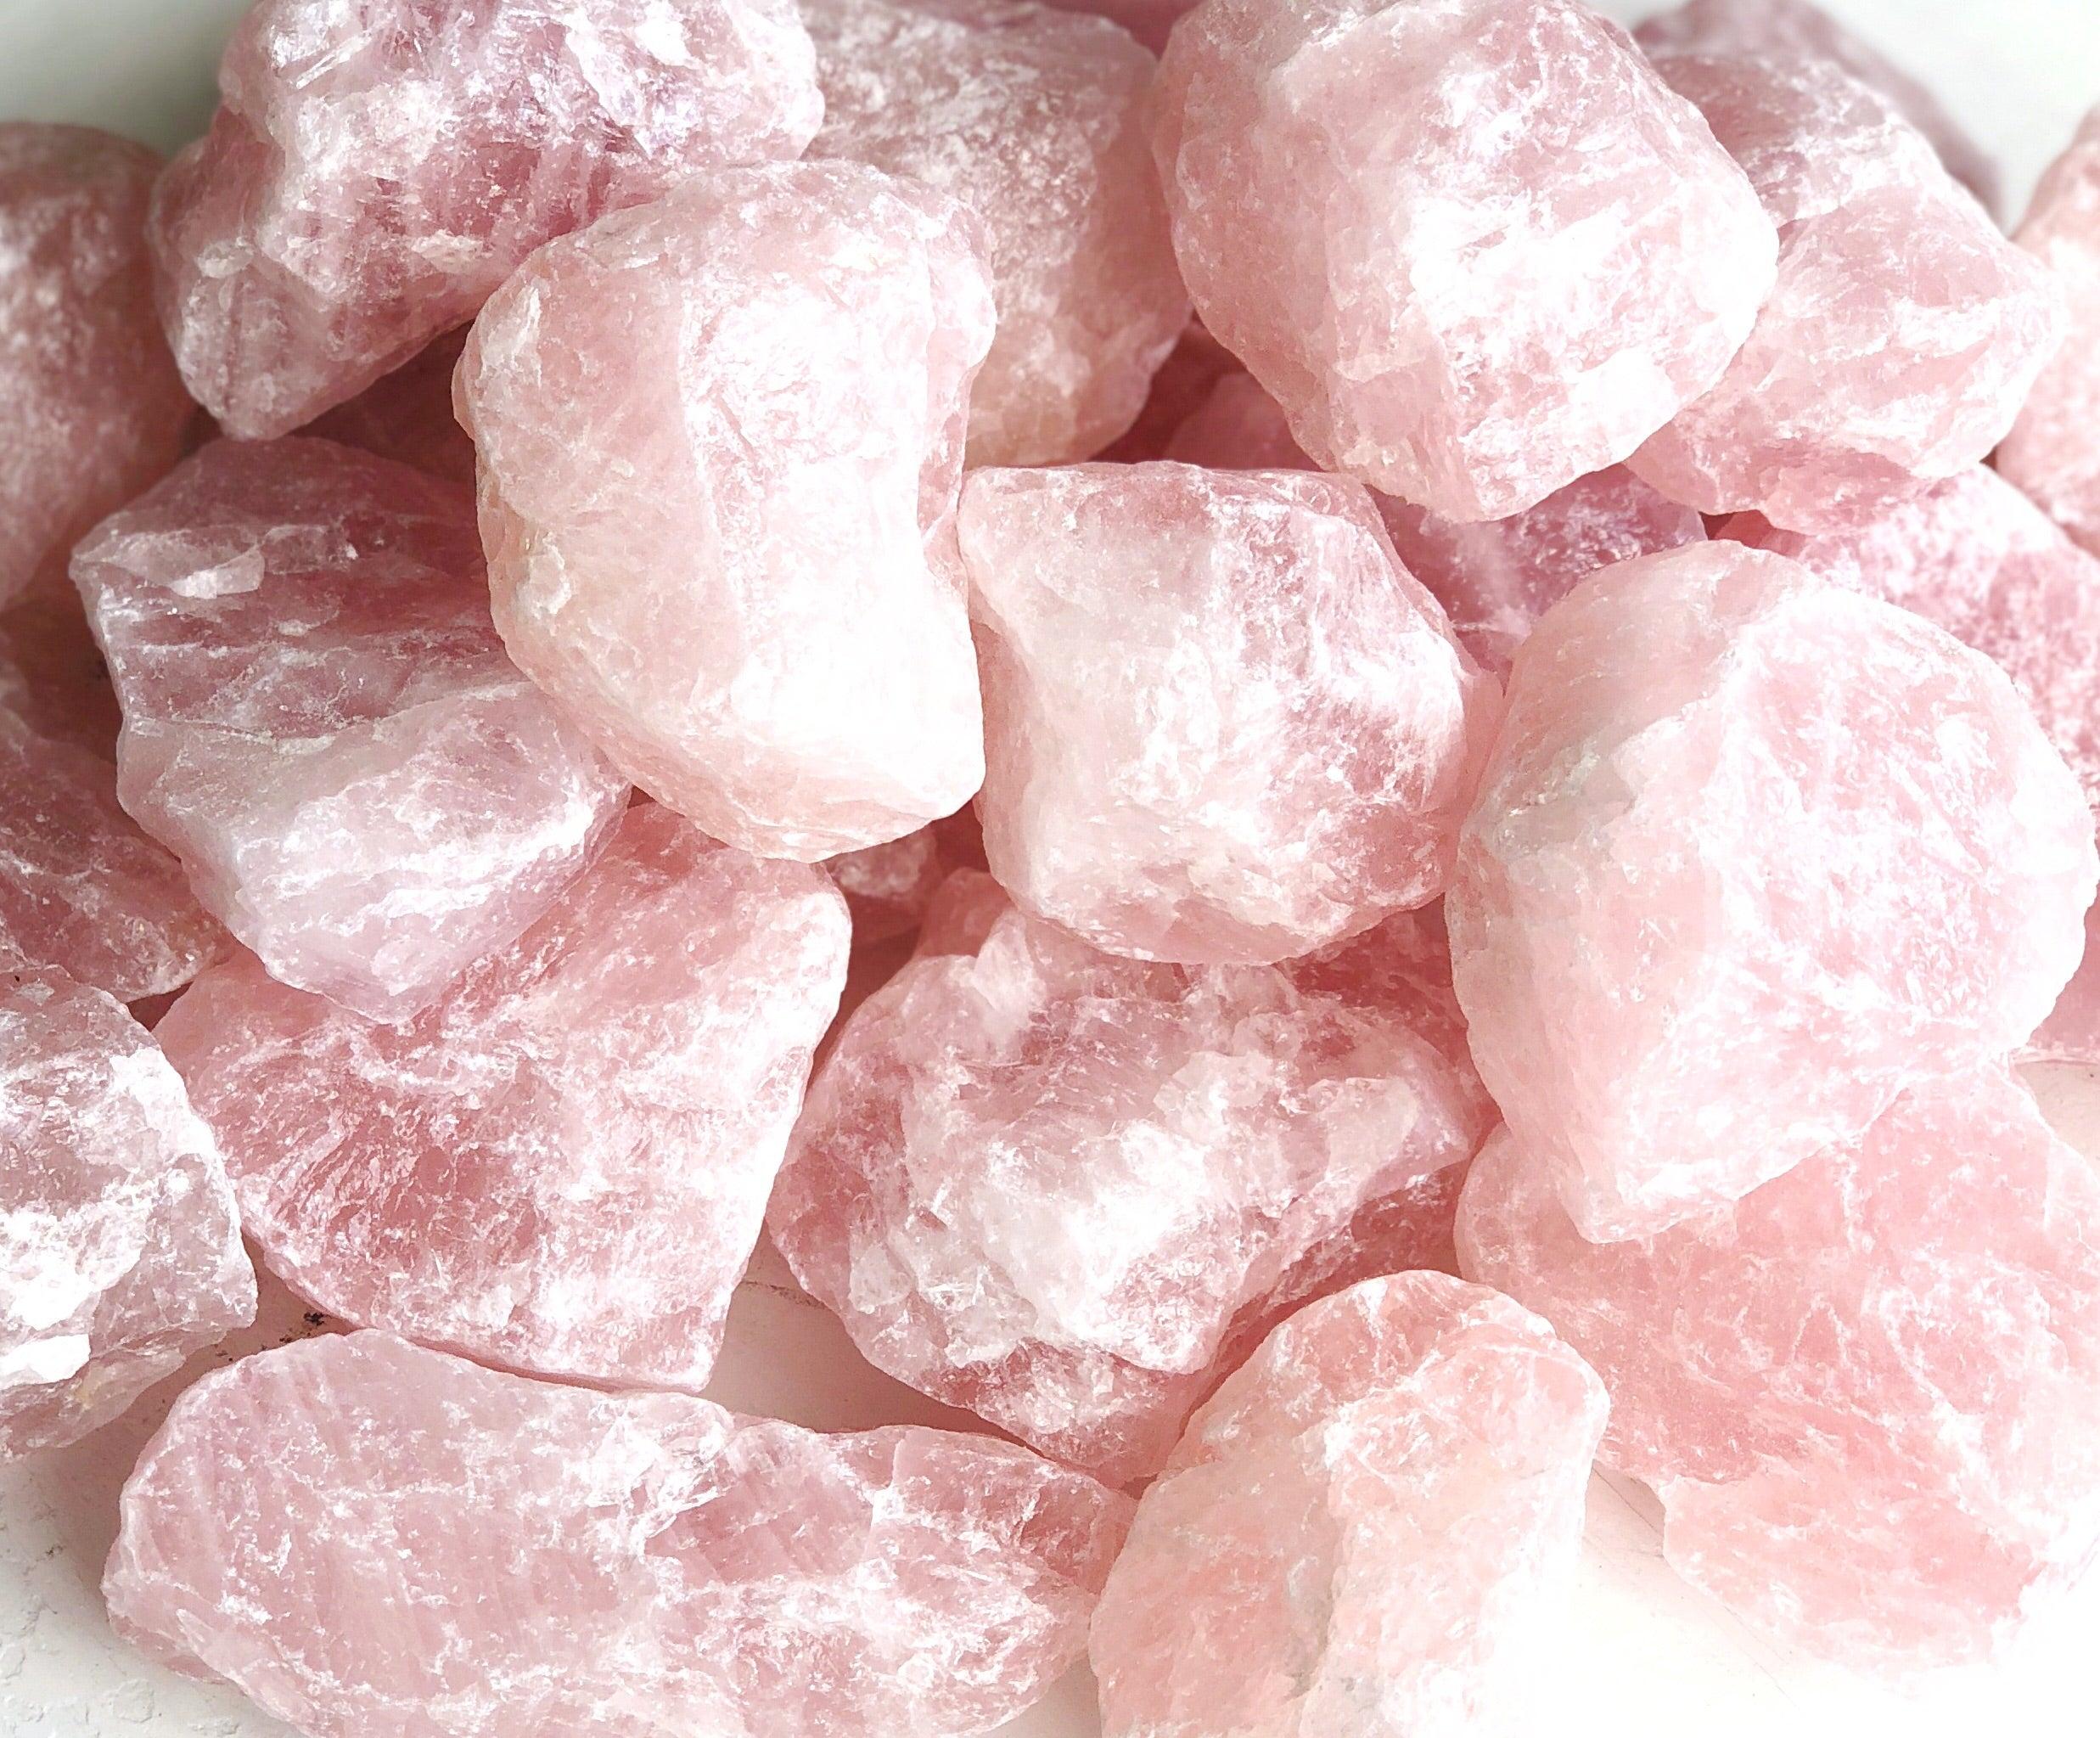 LITTLE PAPER LANE Crystals- Raw Rose Quartz $15